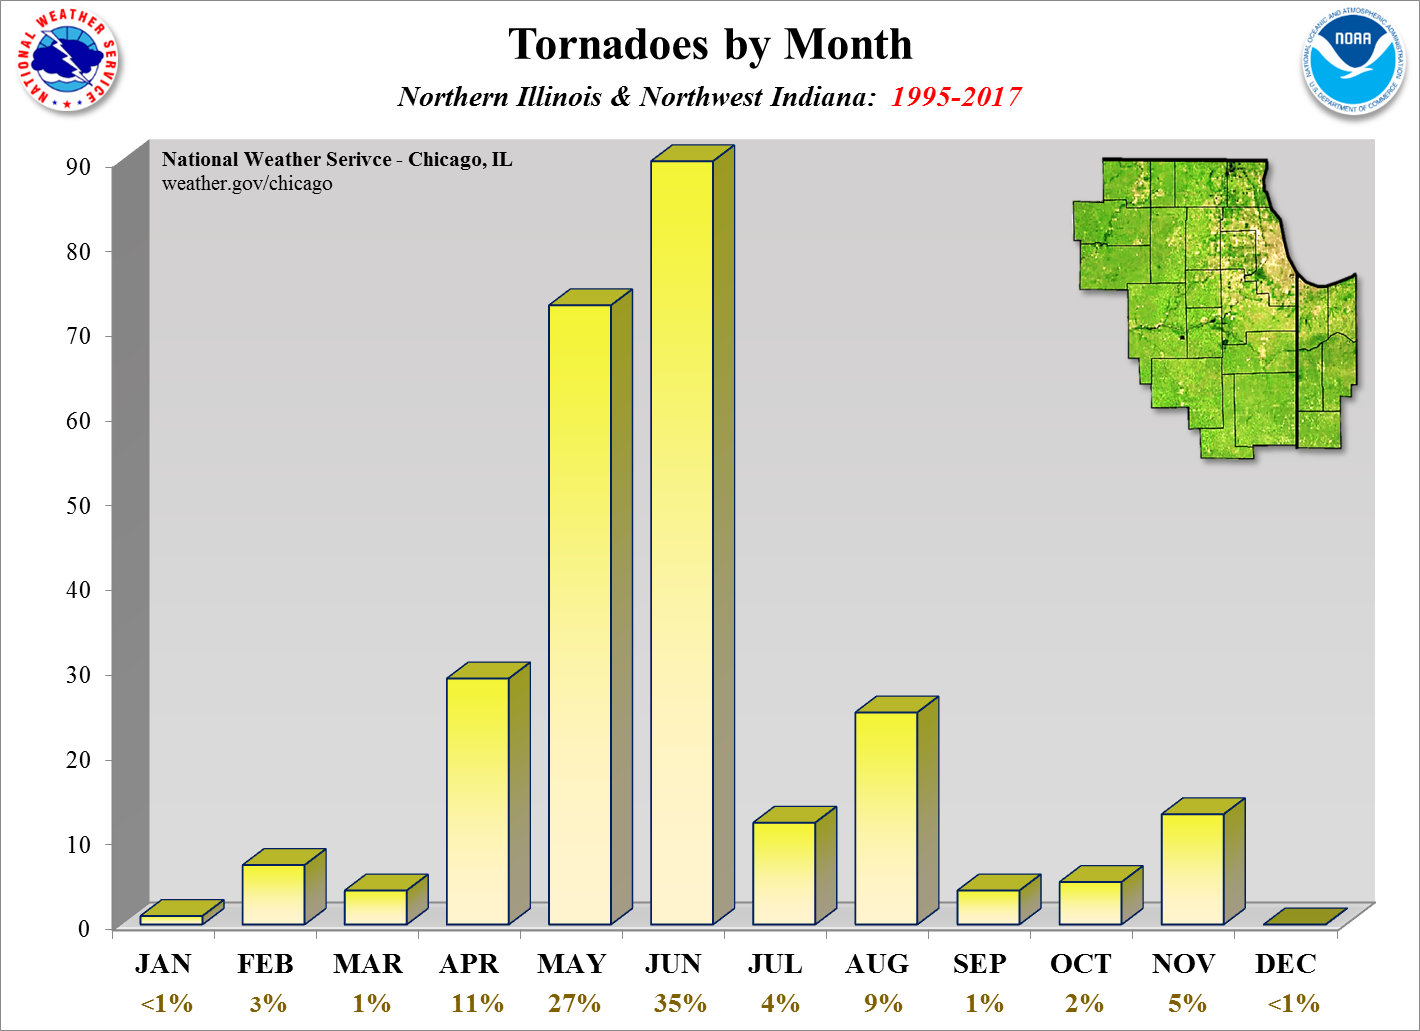 Tornadoes by Time of Year Since 1995